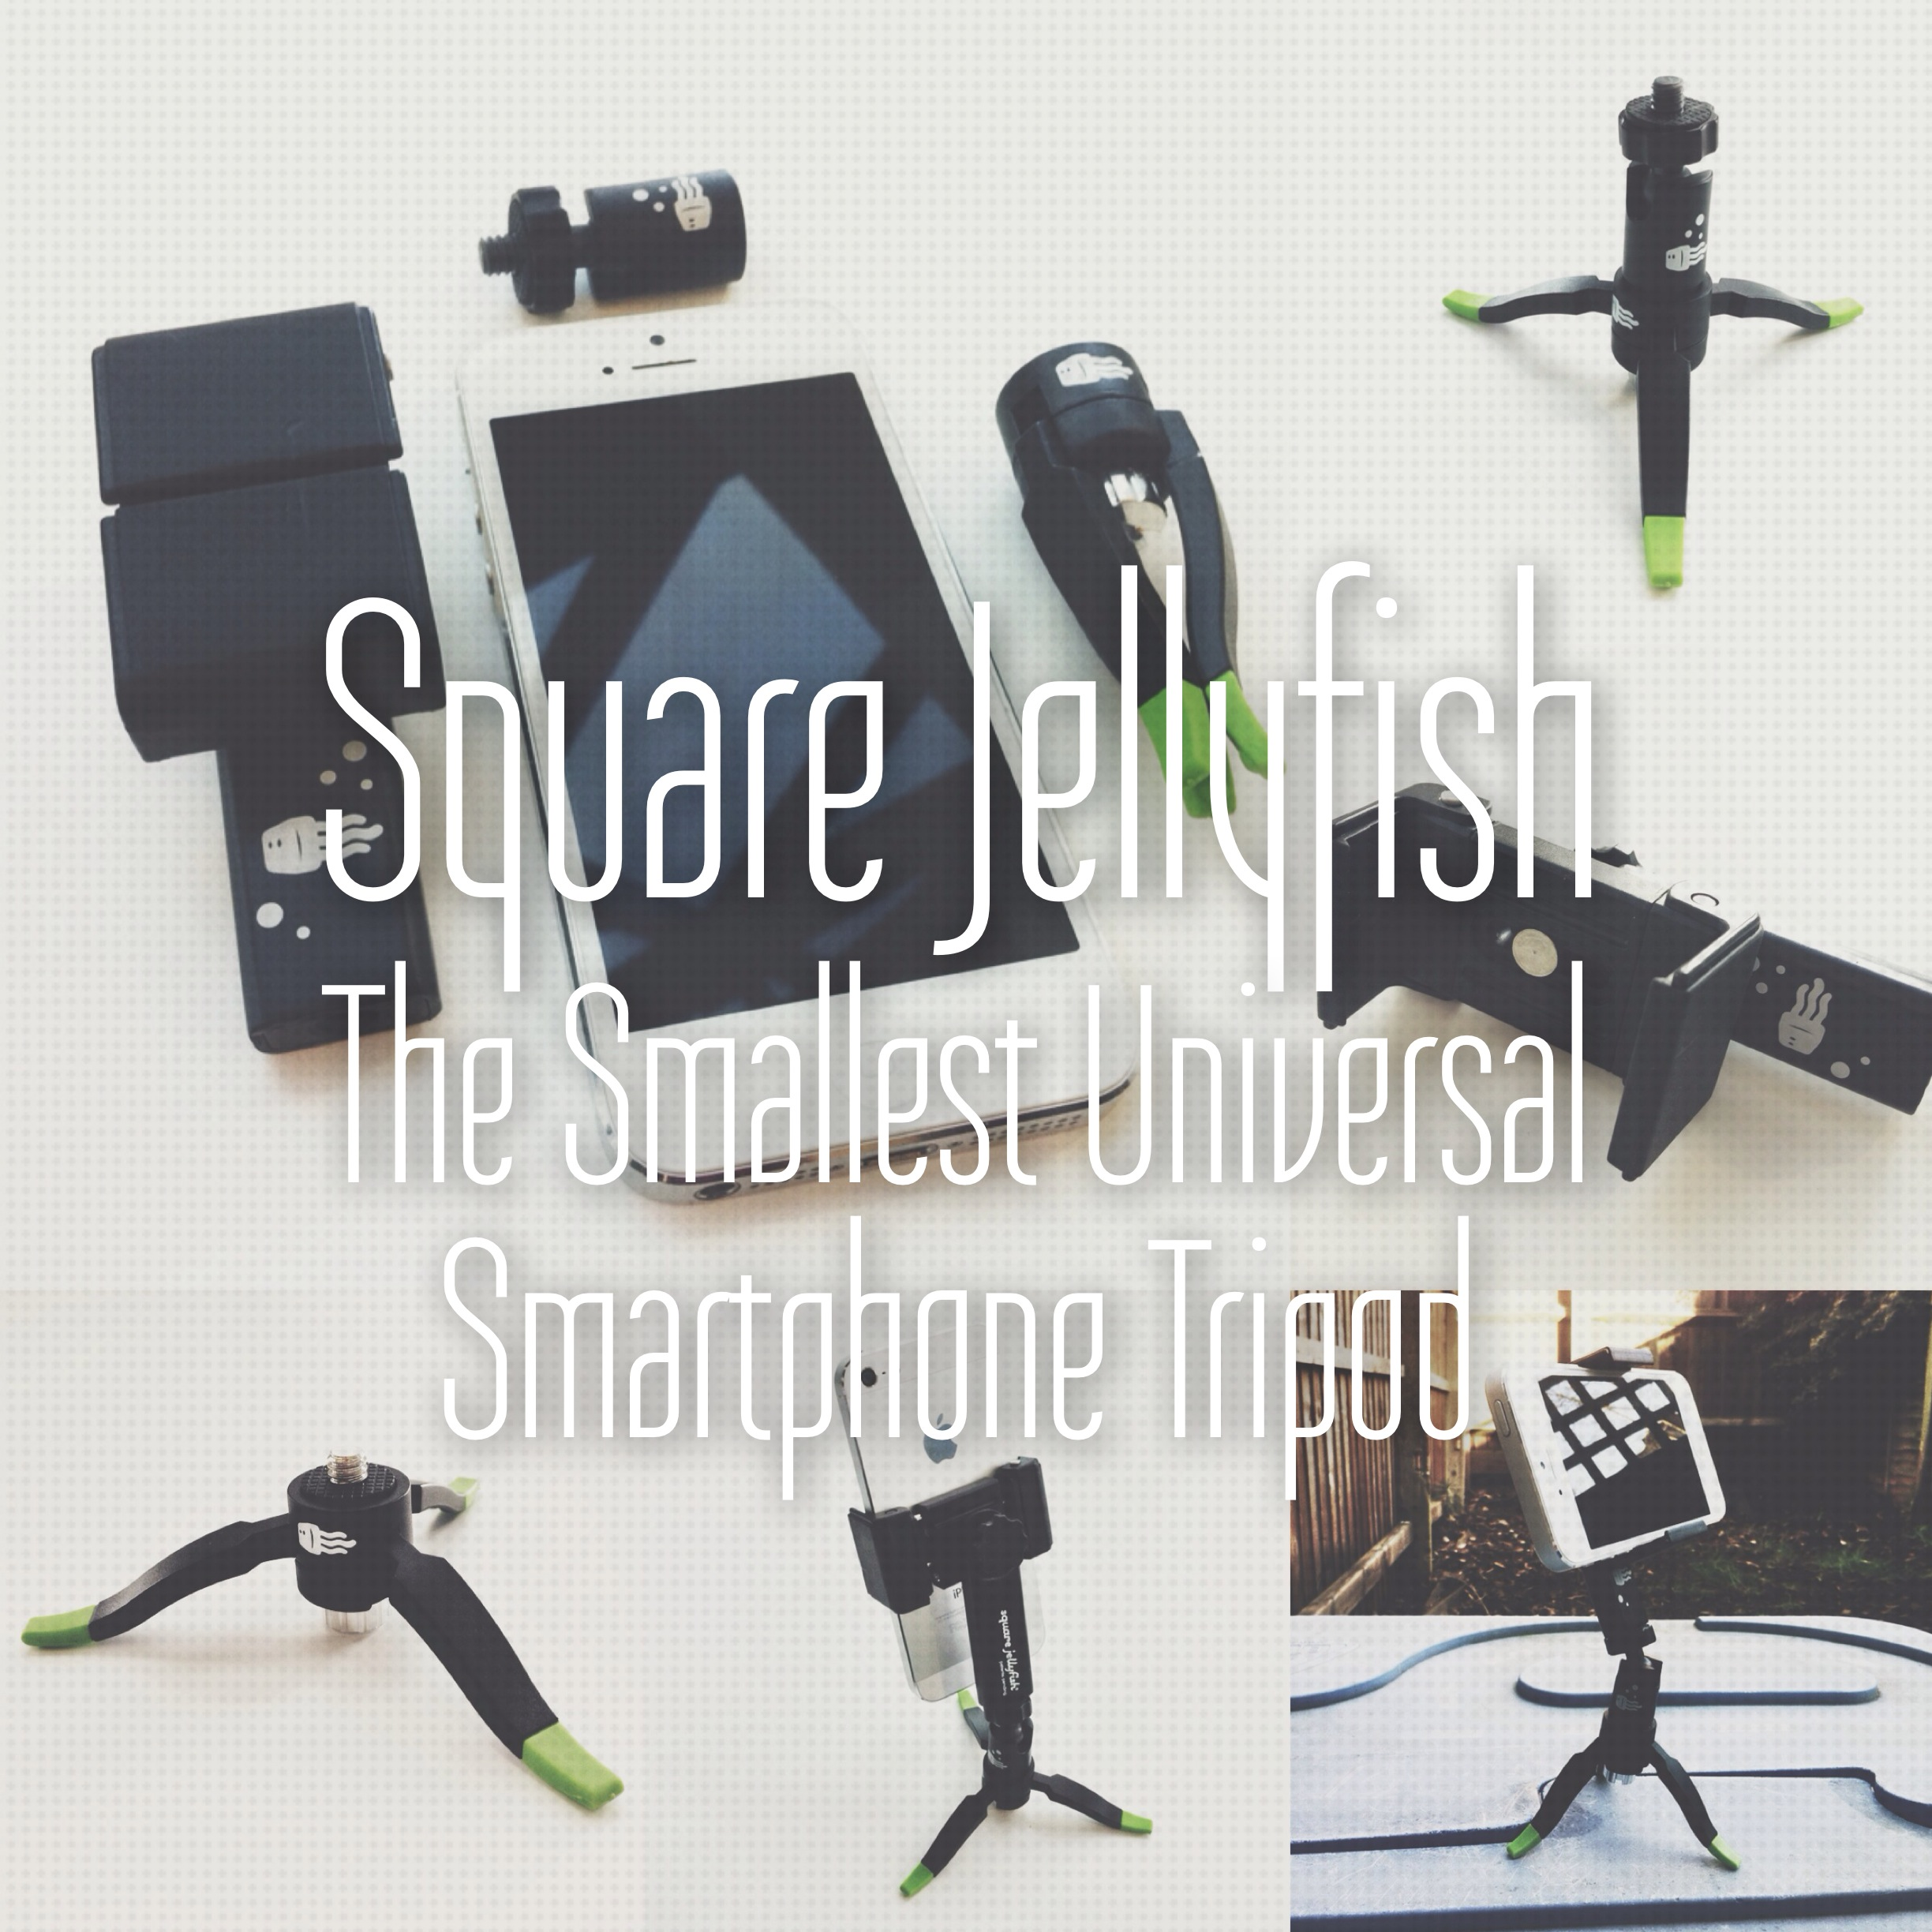 Square Jellyfish - Possibly the Smallest Universal Mobile Tripod